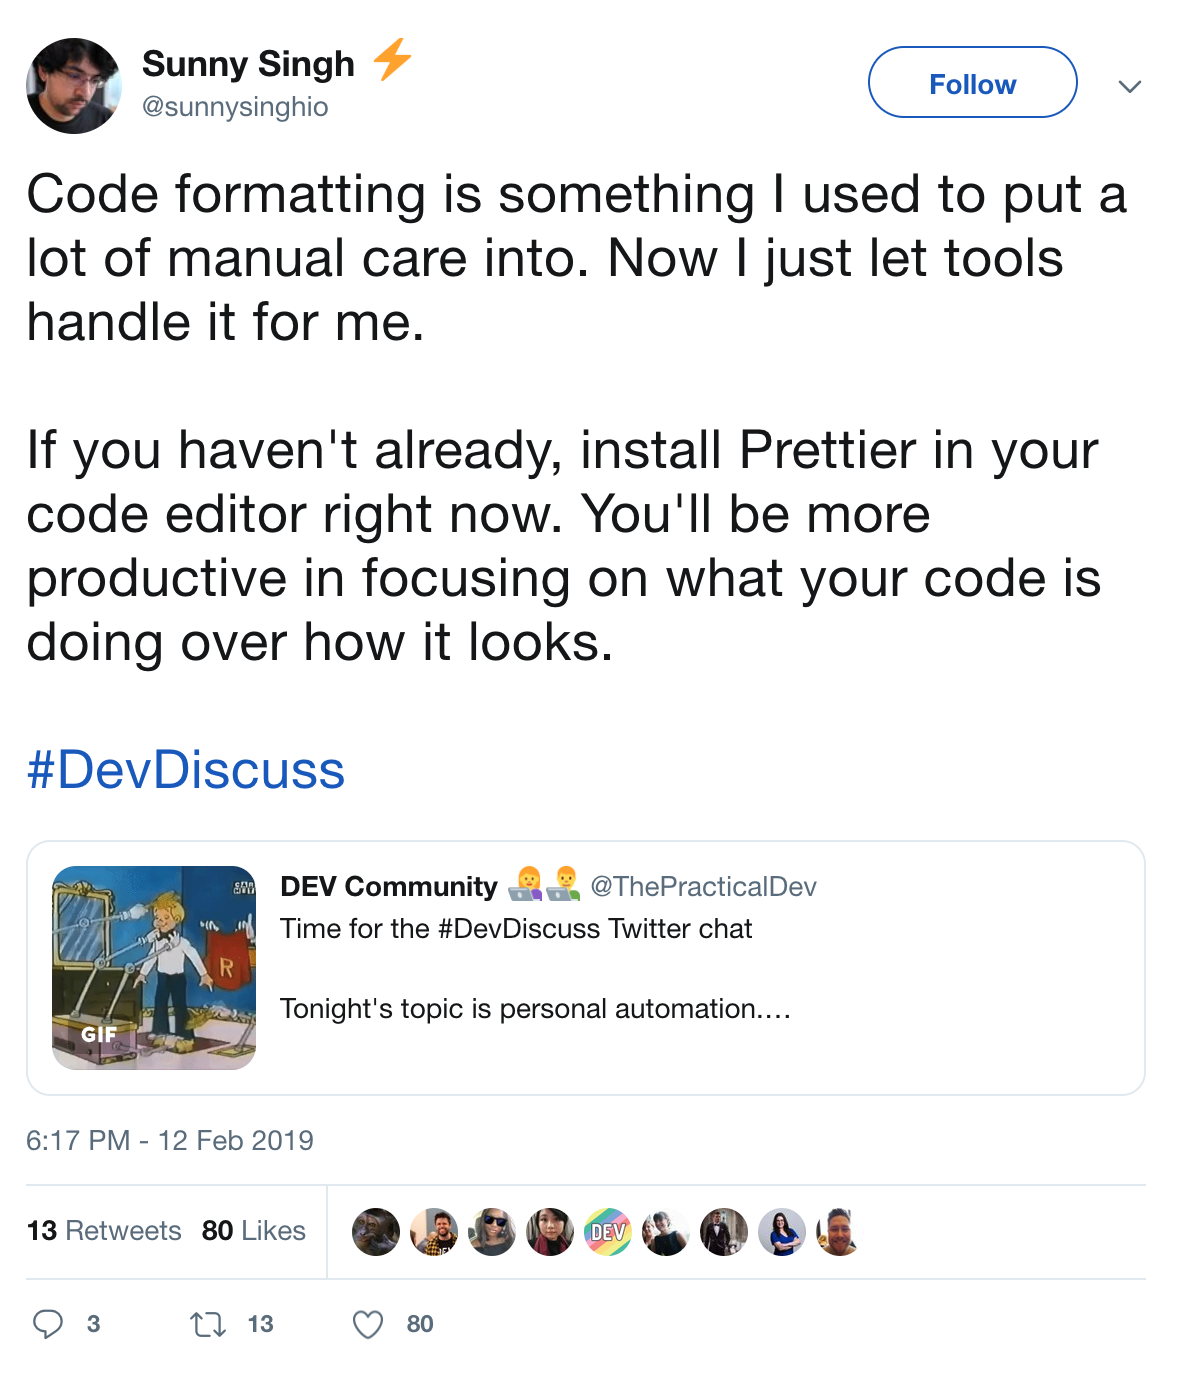 View Tweet: Code formatting is something I used to put a lot of manual care into. Now I just let tools handle it for me. If you haven't already, install Prettier in your code editor right now. You'll be more productive in focusing on what your code is doing over how it looks.